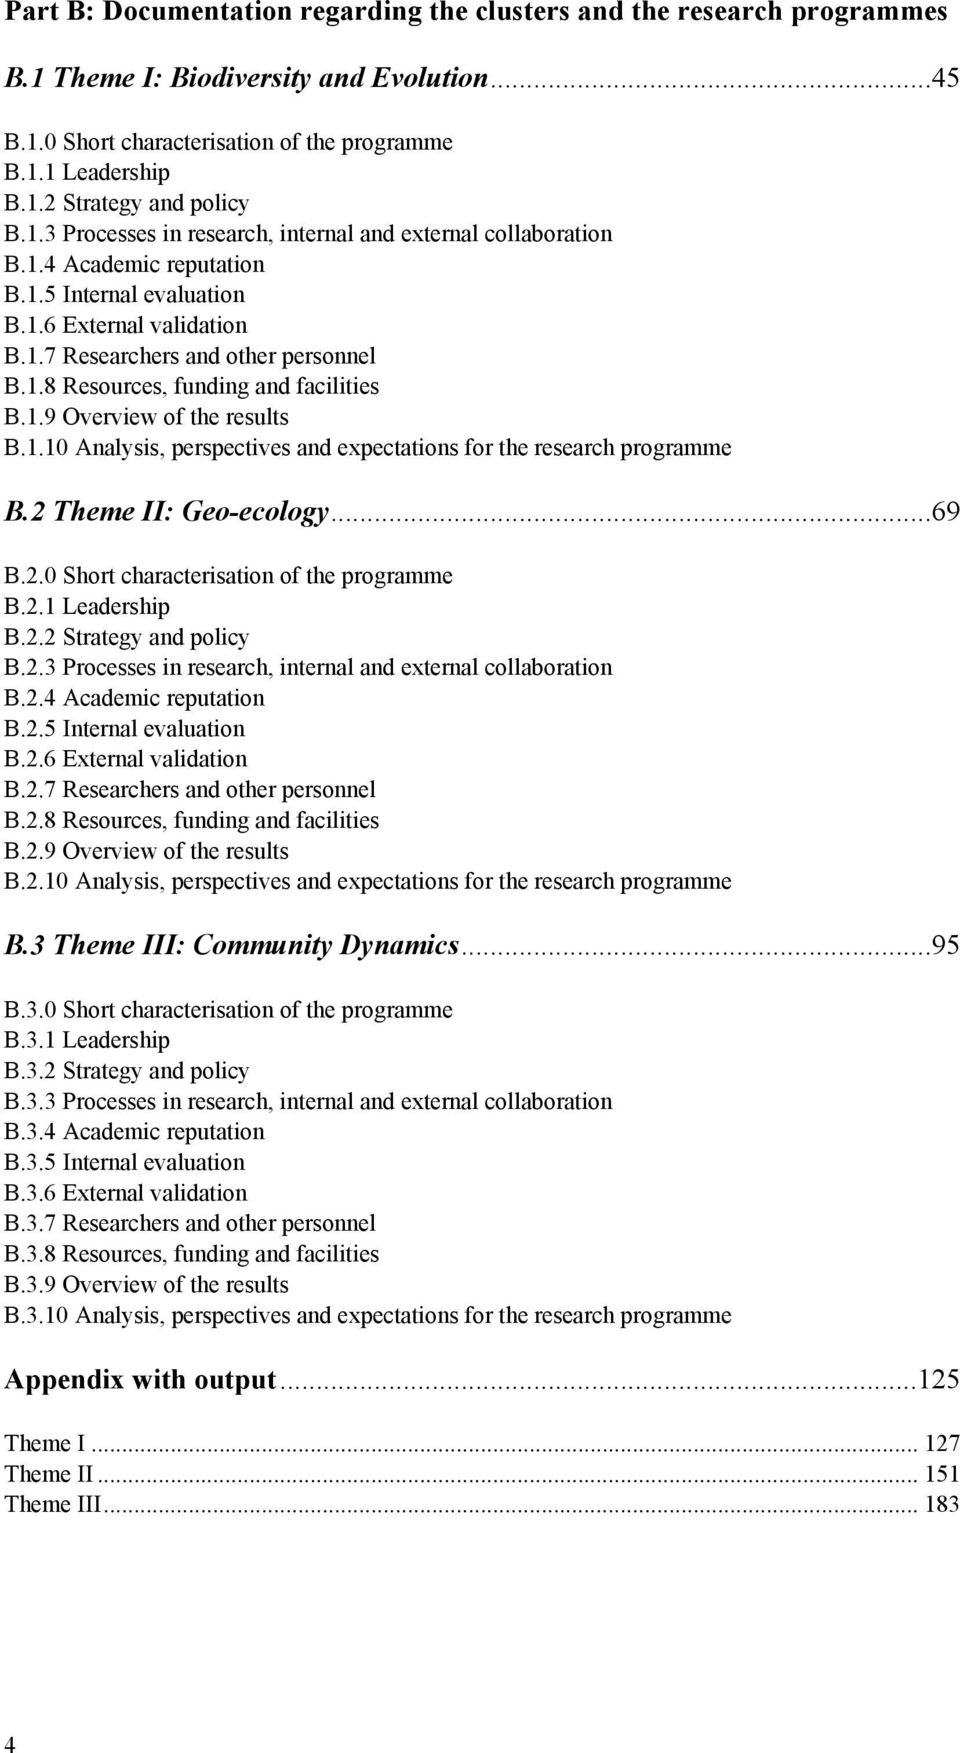 1.9 Overview of the results B.1.10 Analysis, perspectives and expectations for the research programme B.2 Theme II: Geo-ecology...69 B.2.0 Short characterisation of the programme B.2.1 Leadership B.2.2 Strategy and policy B.